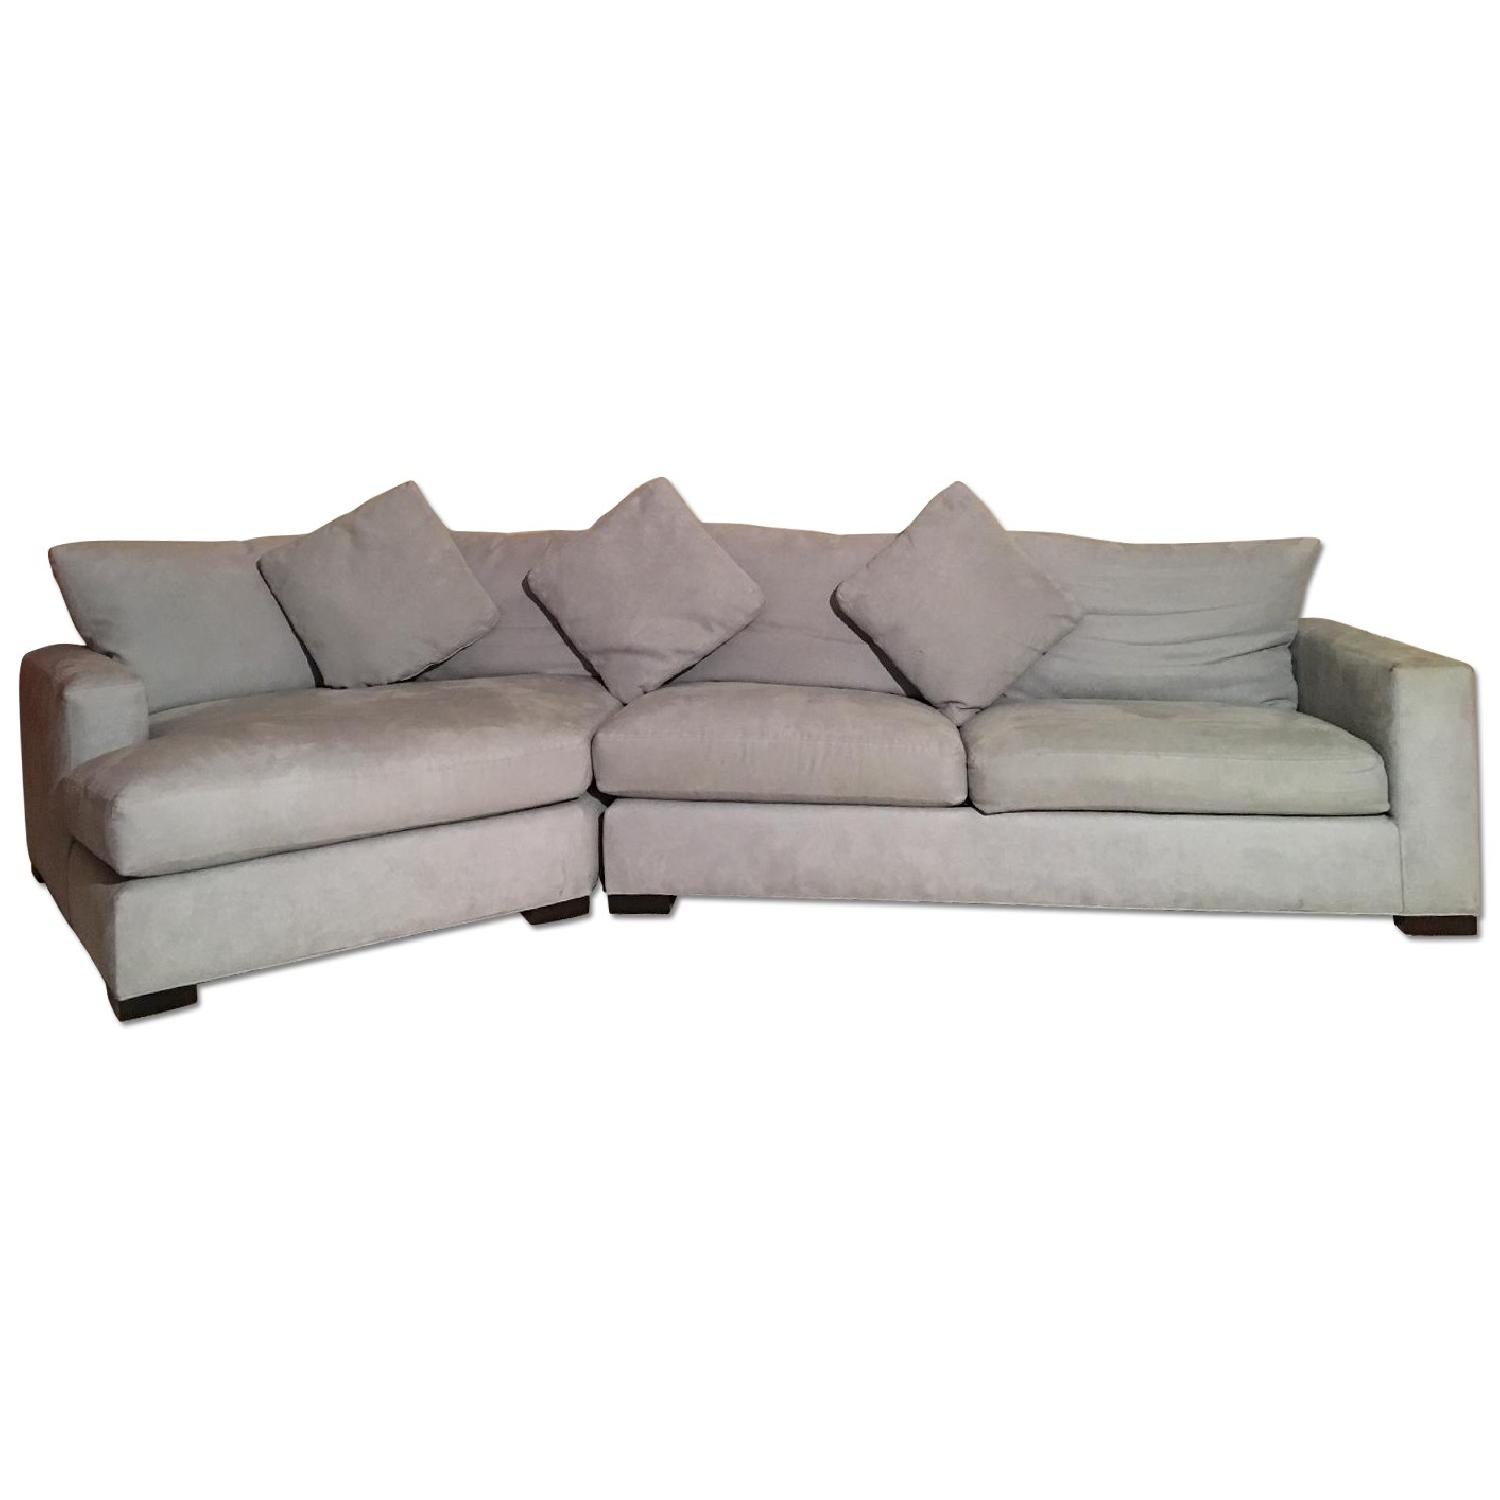 Room & Board Microsuede L-Shaped Couch - image-0